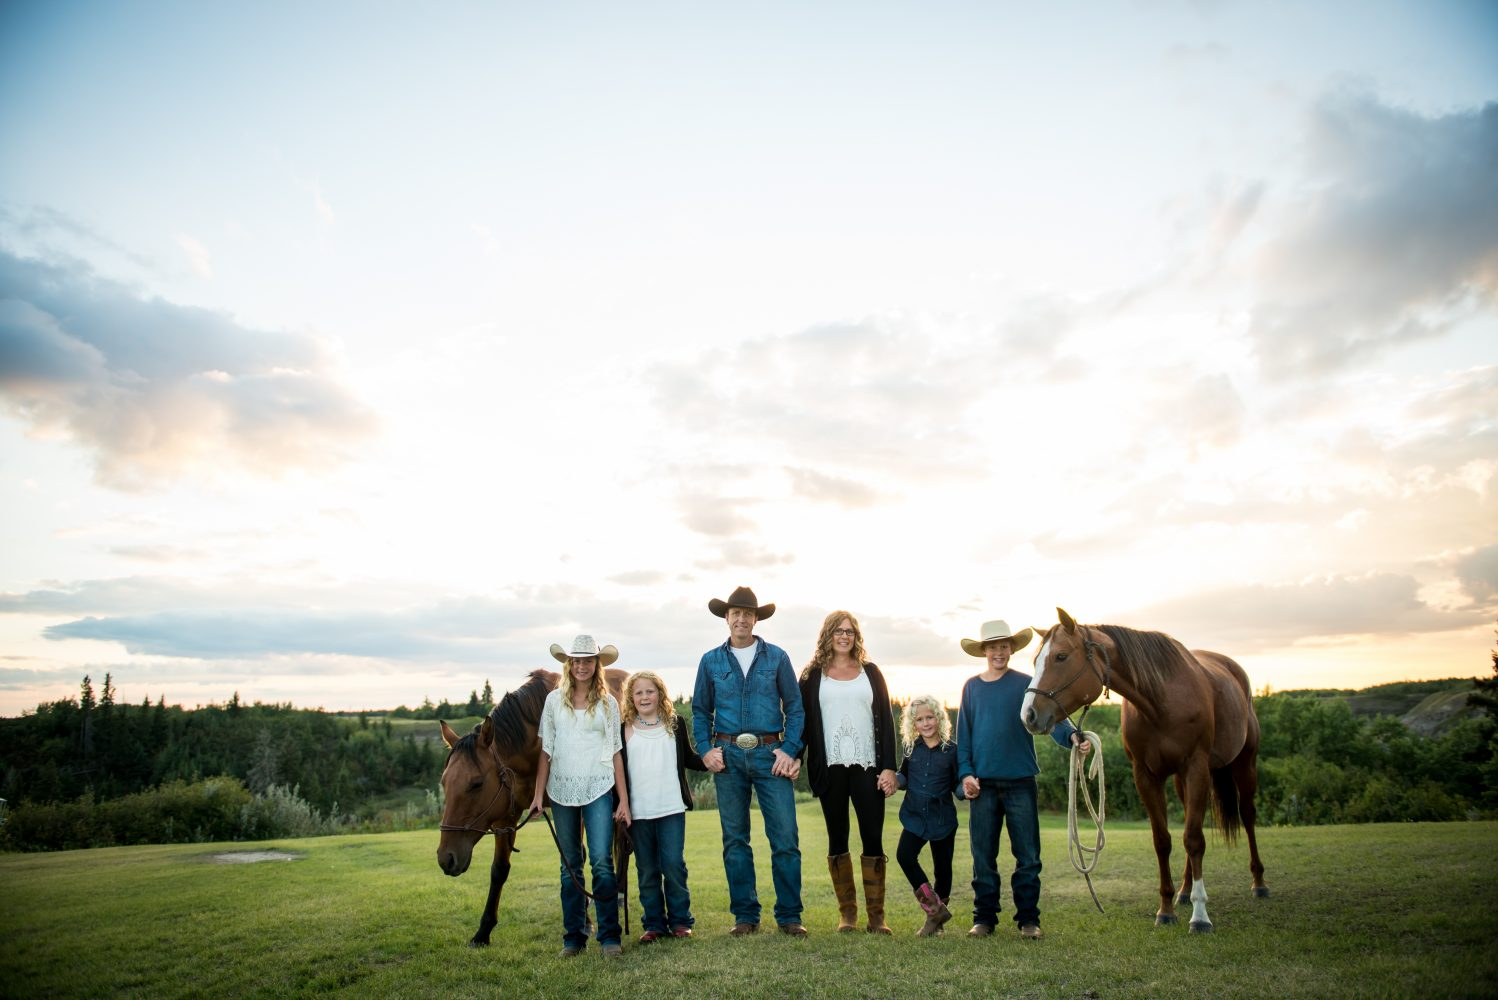 Epic family photograph with horses, during a beautiful sunset at Circle square Ranch | 3Haus Photographics